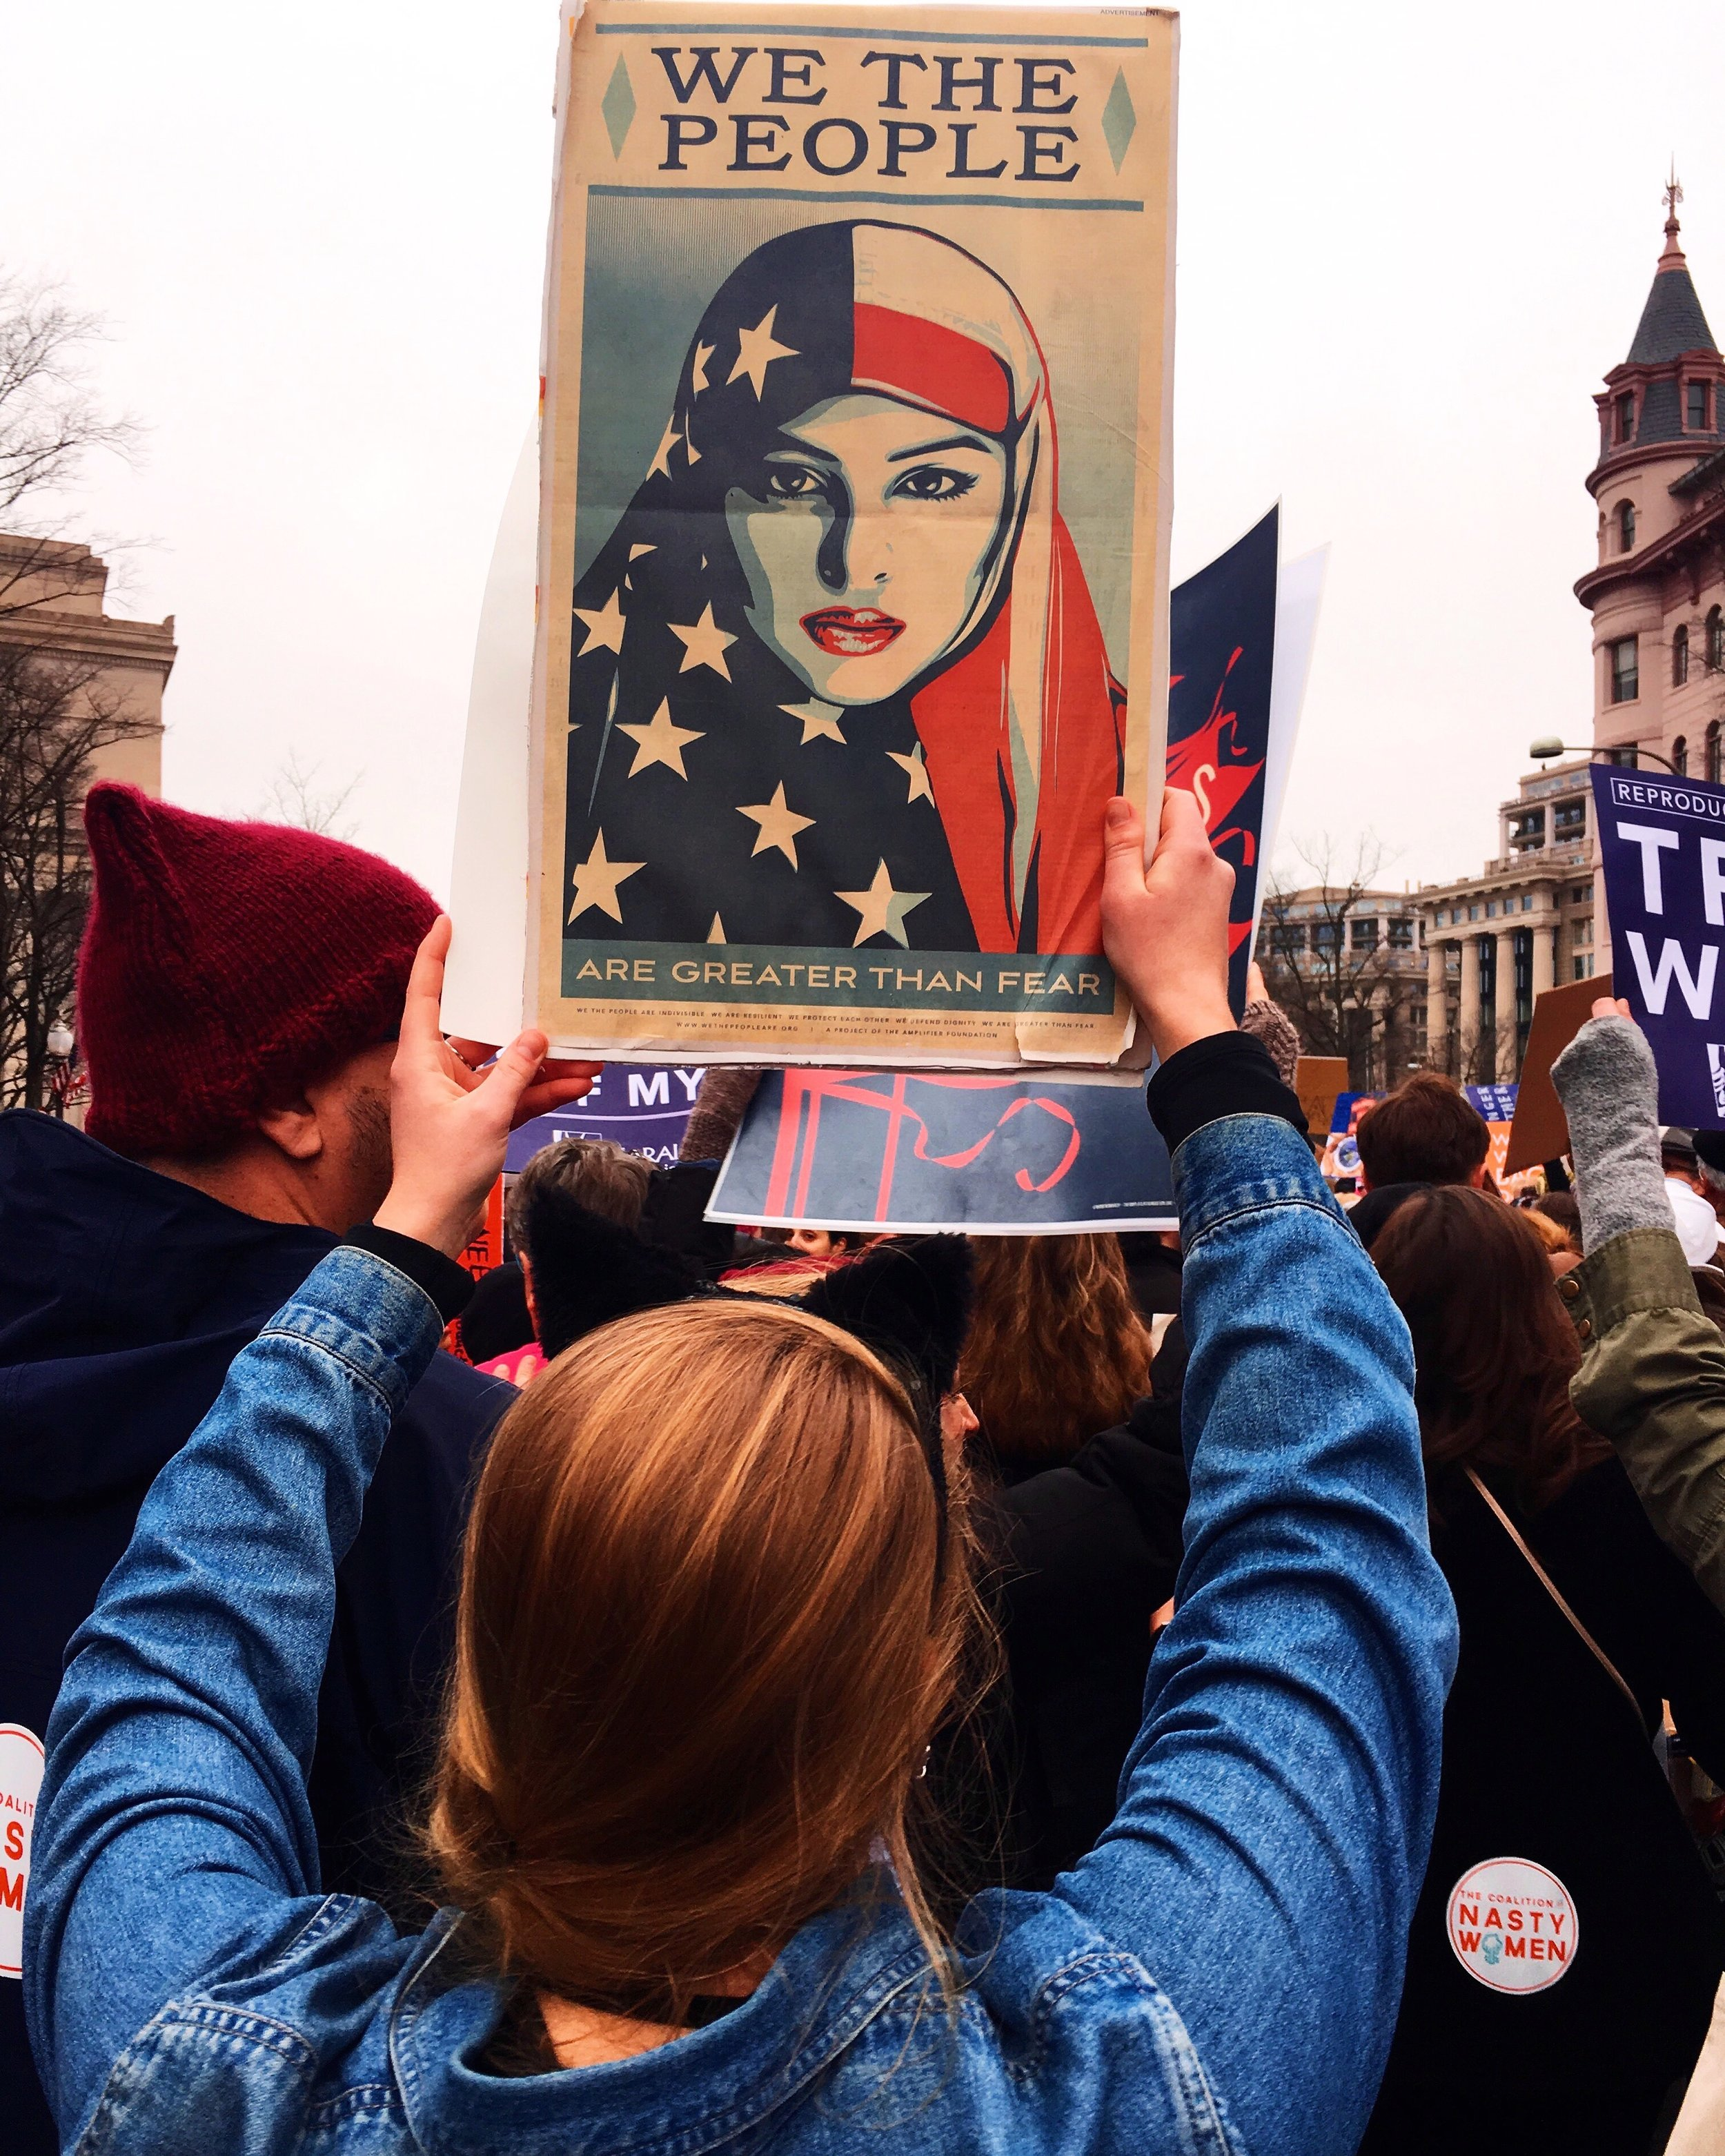 At the Women's March in January 2017